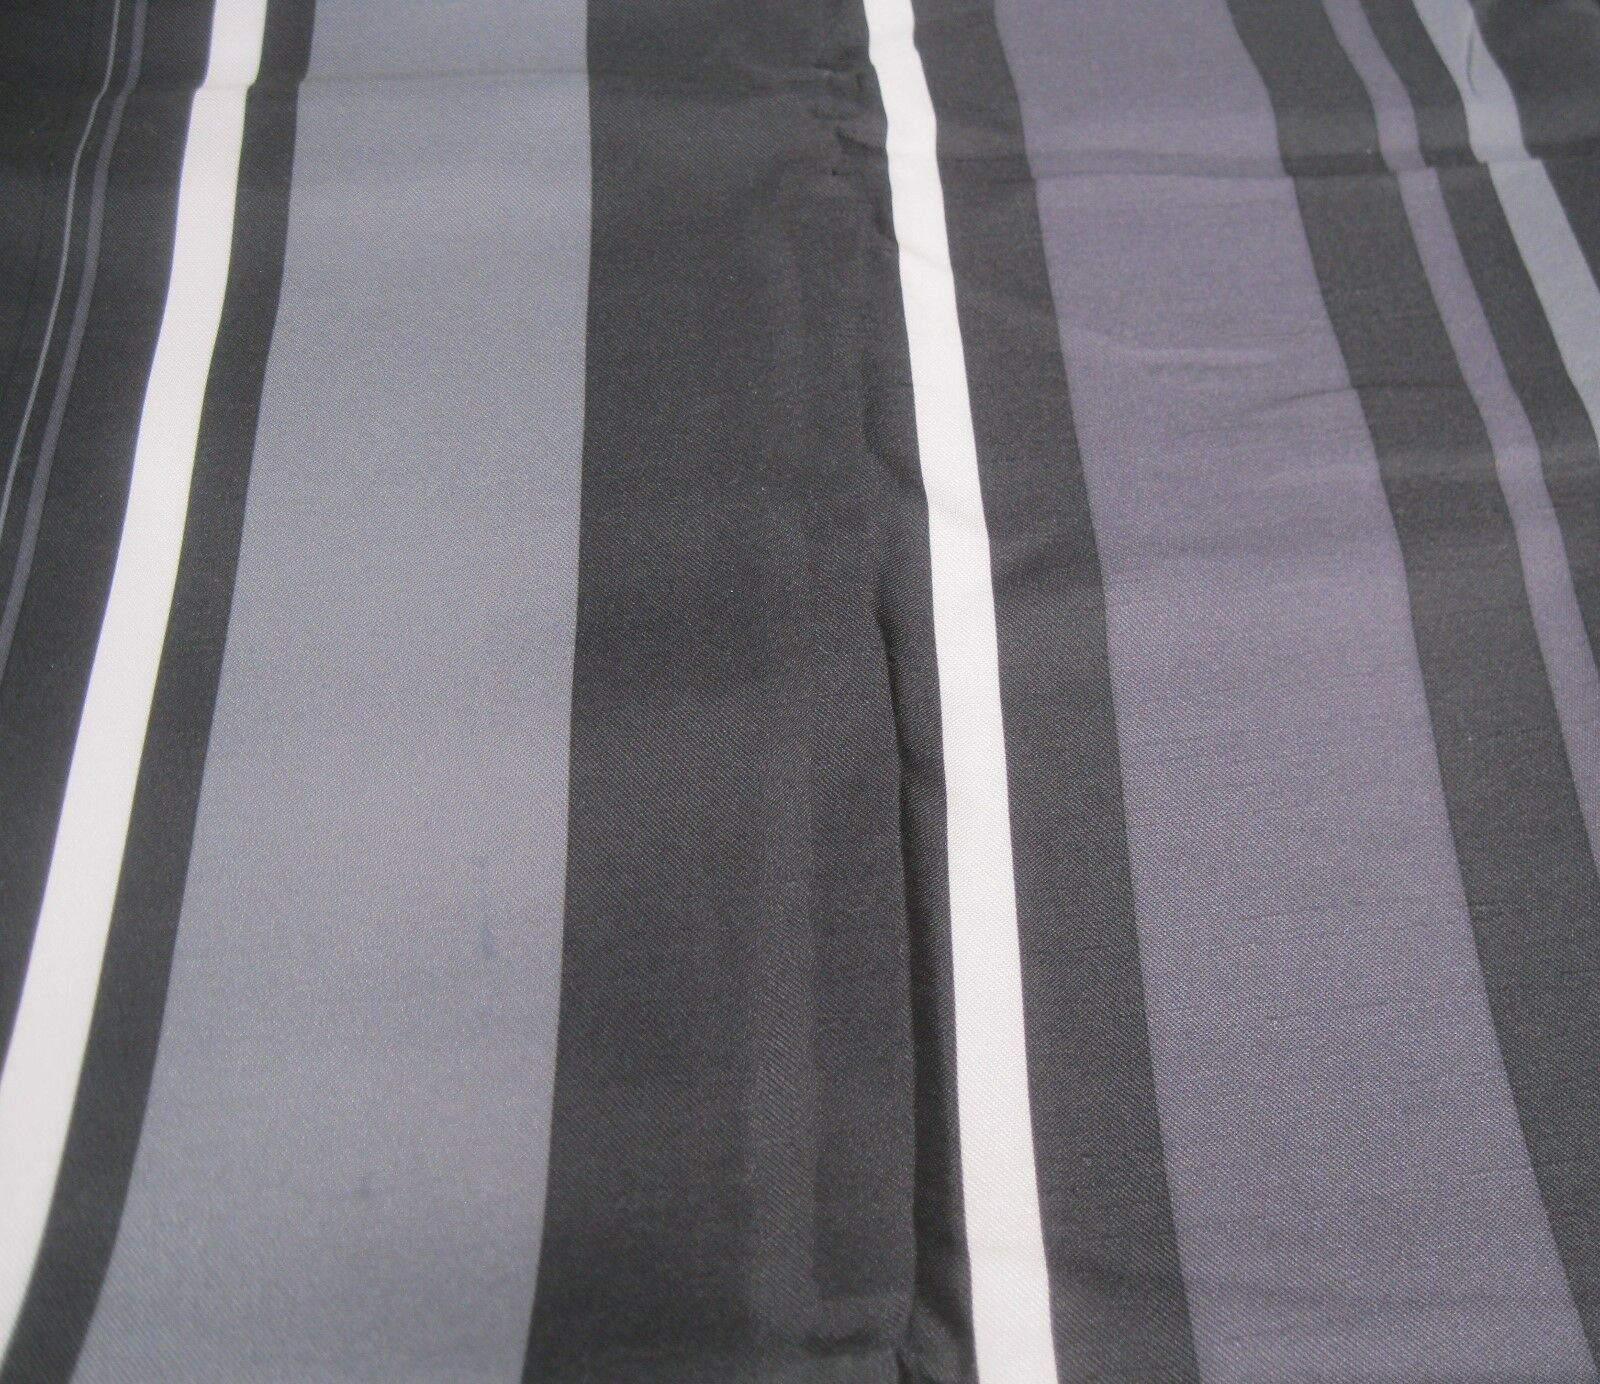 Primary image for Allen Roth Allison Stripe Drape Curtain Pocket Panel Onyx Black Gray Purple 84L